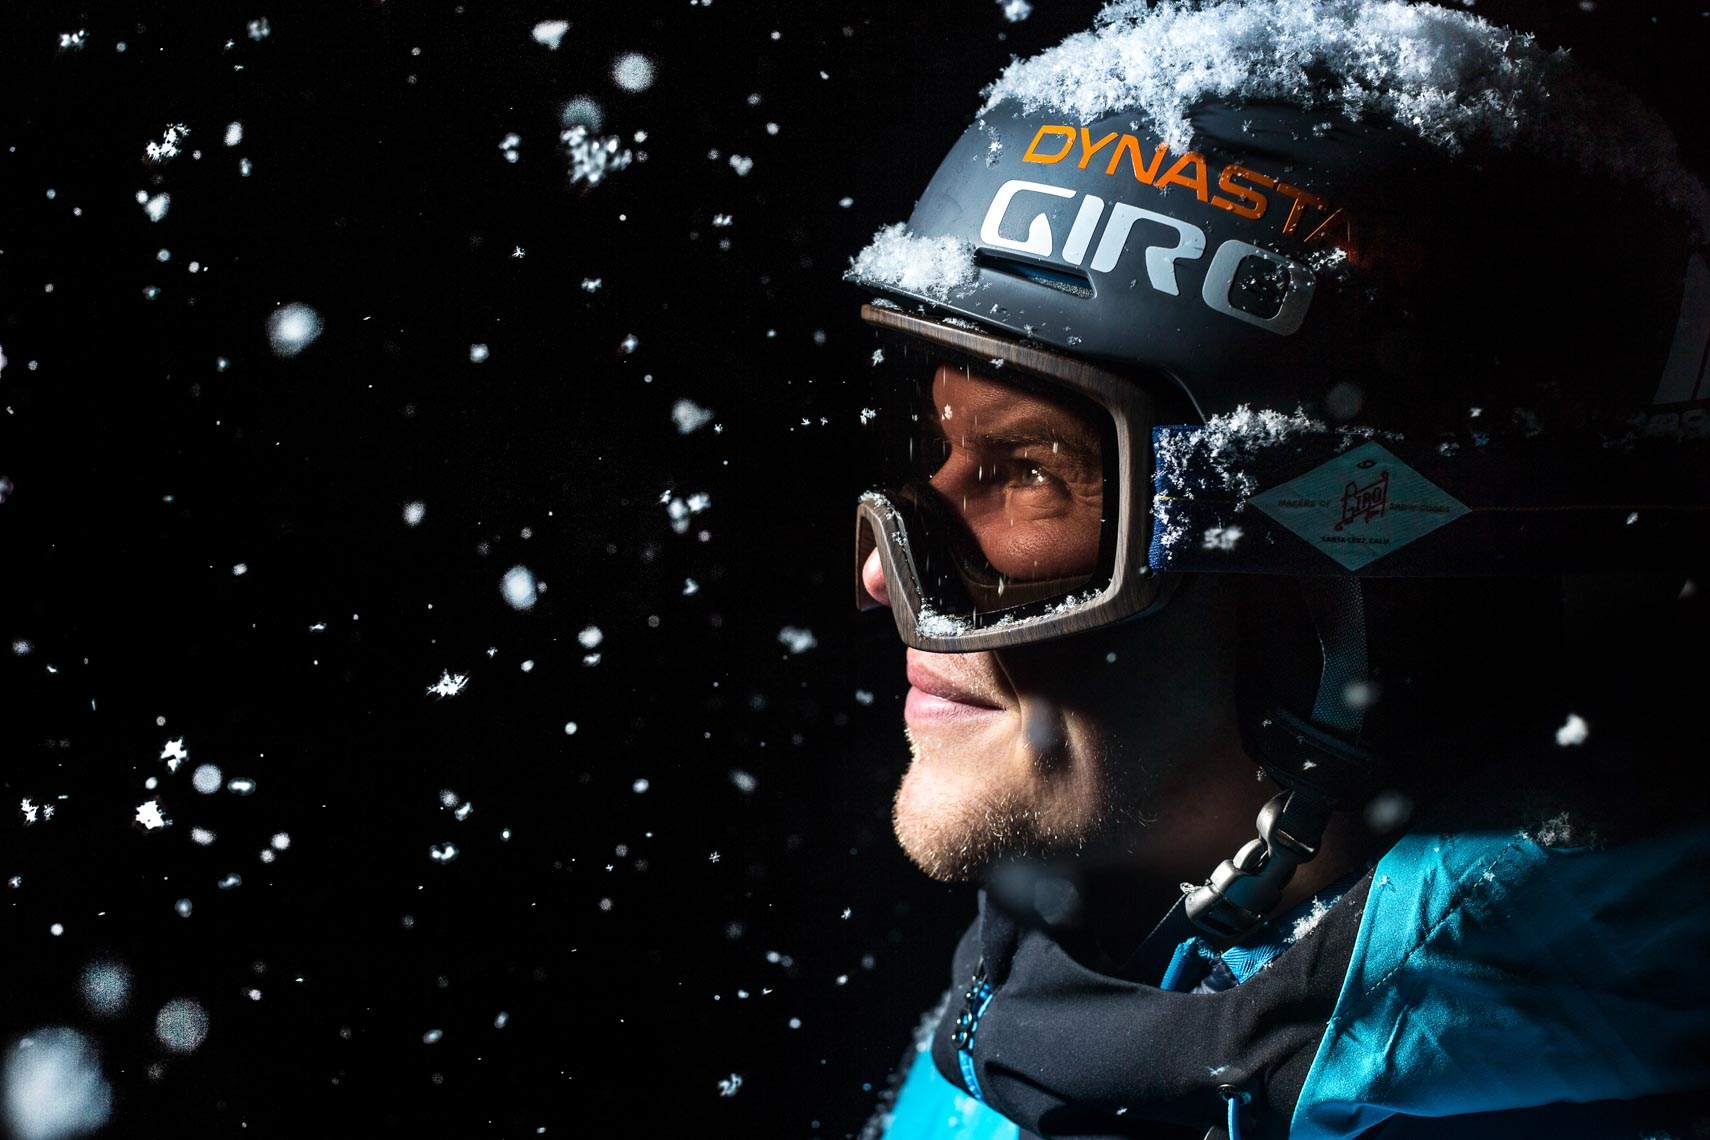 Giro ski helmet pro skier portrait in Japan